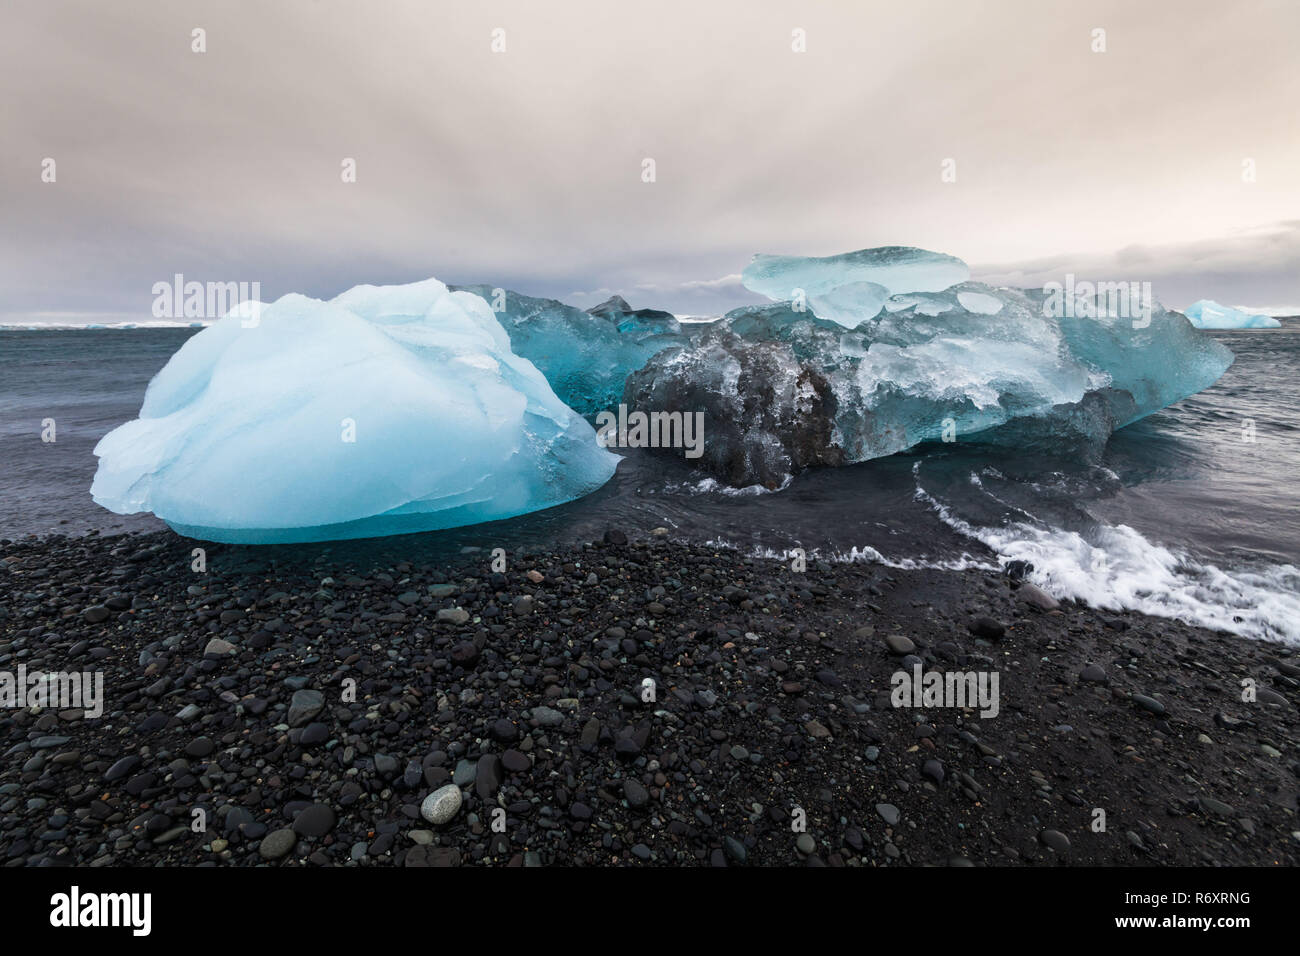 Jokulsarlon is a glacial lagoon or better known as Iceberg Lagoon which located in Vatnajokull National Park Iceland - Stock Image